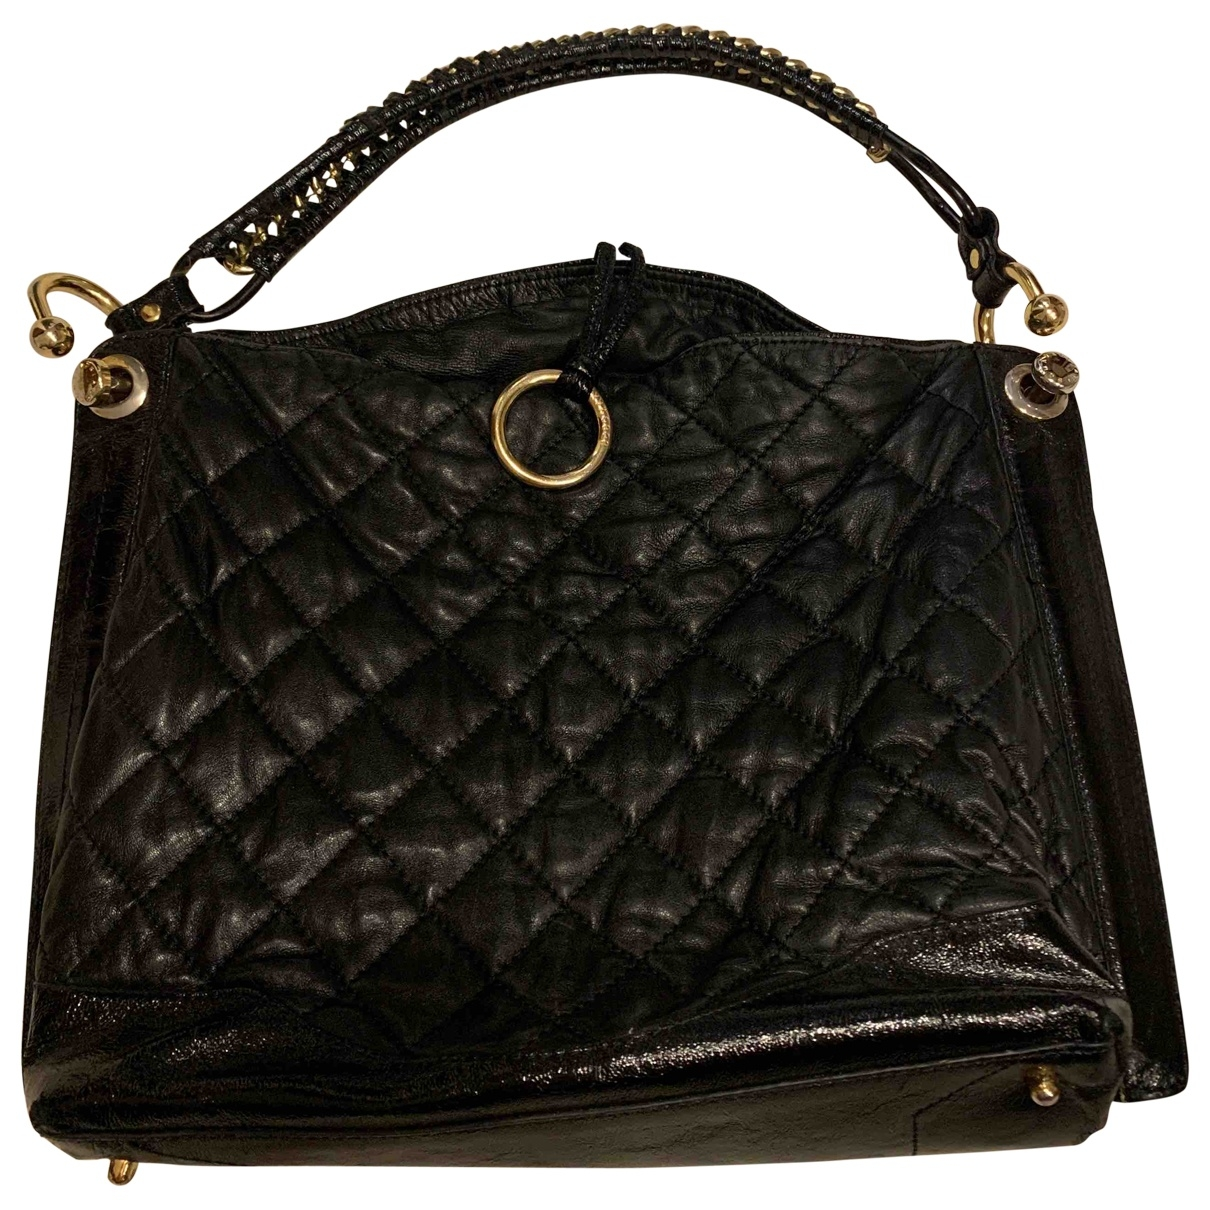 Bcbg Max Azria \N Black Leather handbag for Women \N